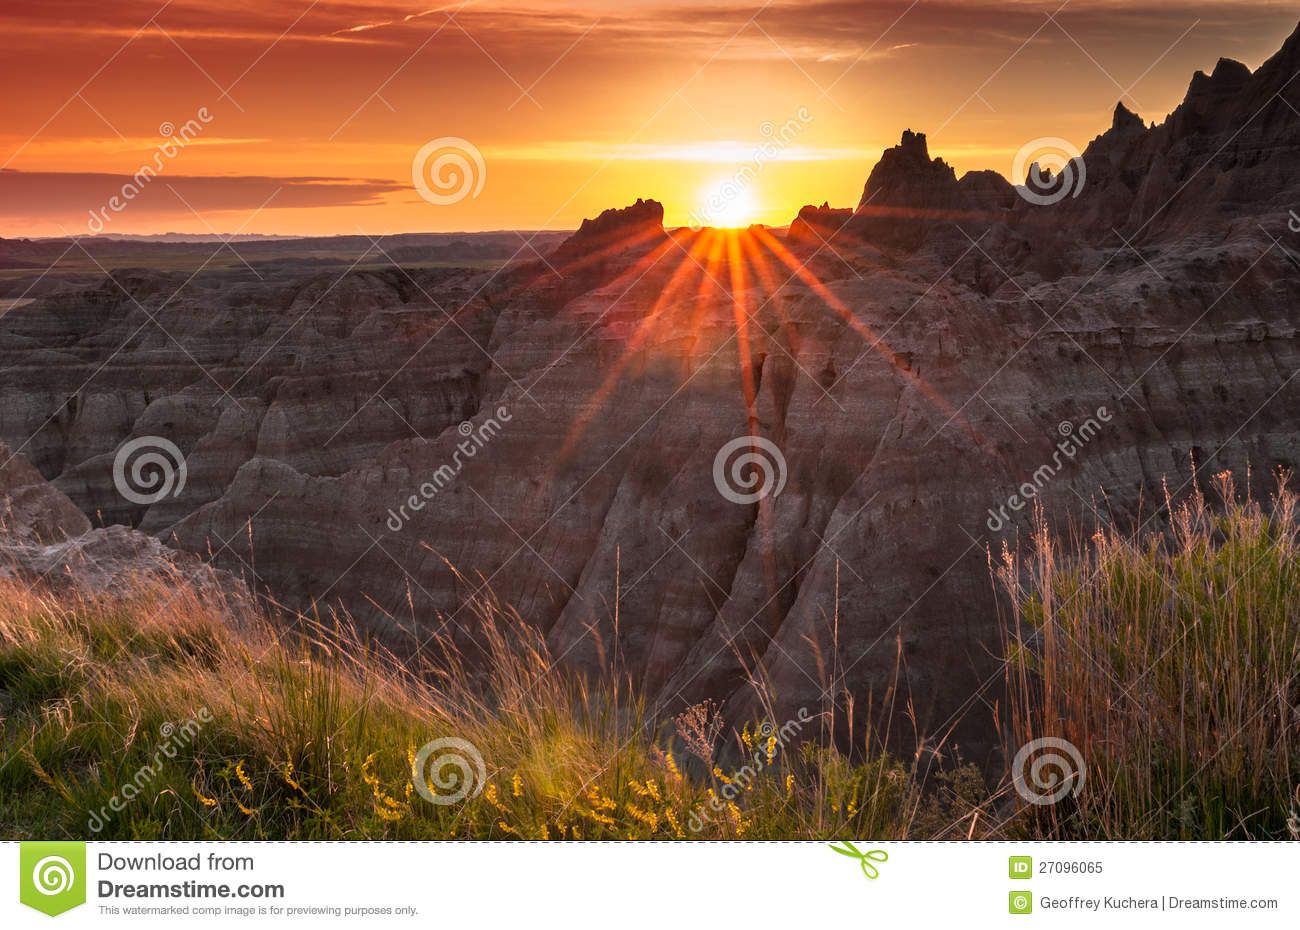 Sunset Over The Badlands Of South Dakota Royalty Free Stock Photo.